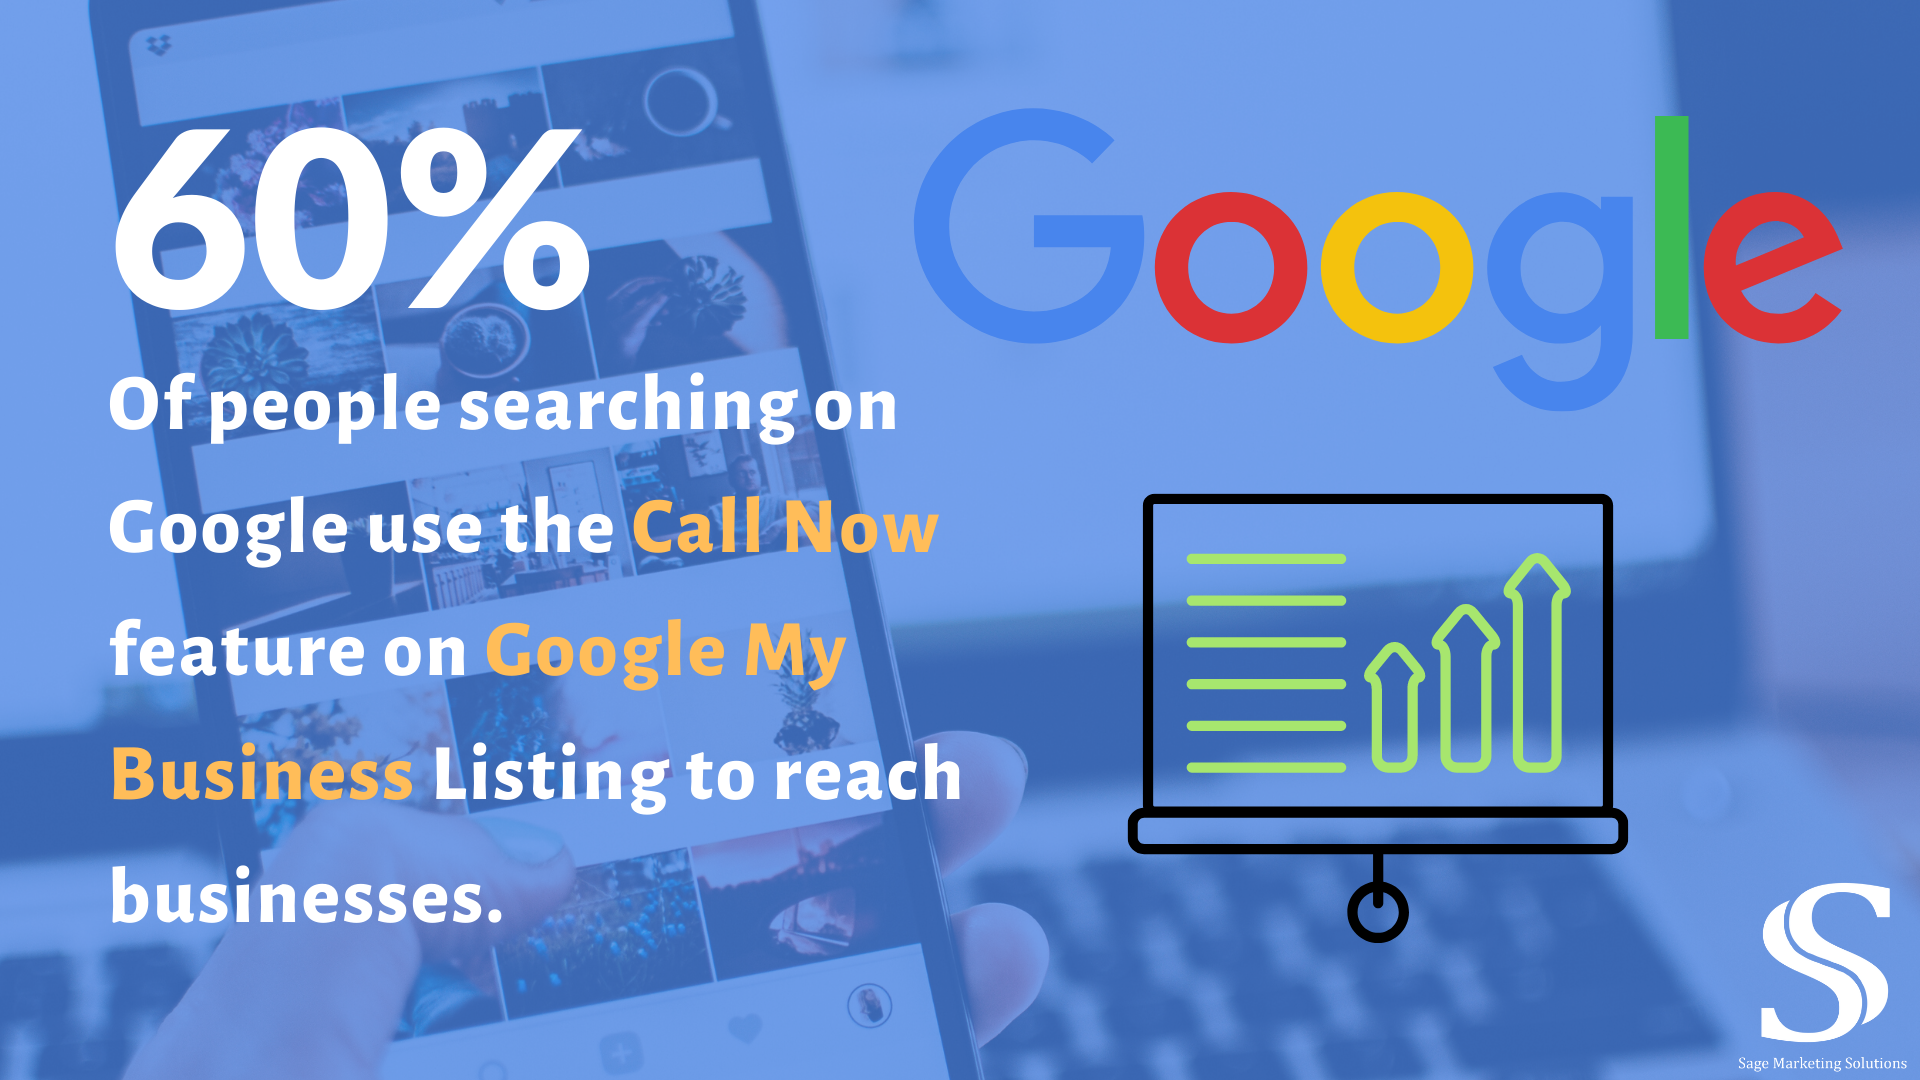 New findings from Google show that more than half of mobile users use the call now button when searching Google